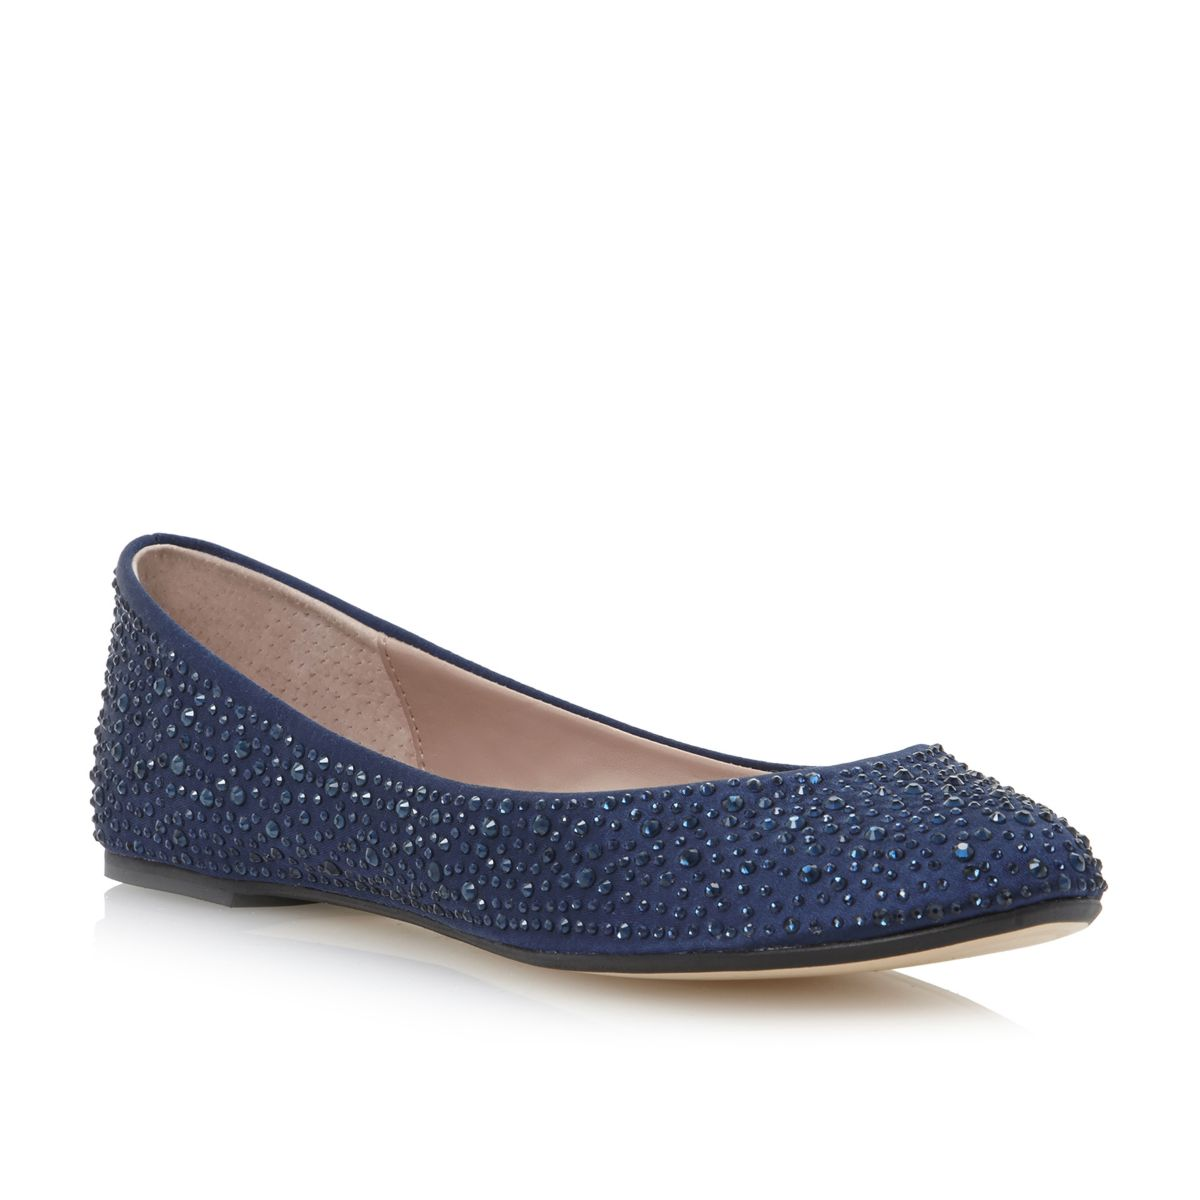 Put your best foot forward with our collection of women's shoes. Choose from sparkling heels, comfy & cute ballerina flats or stylish boots for day or night. HELLO! It looks like you're in the UK. If you'd like to ship to a different country you can change it here. Blue Gold Ivory Multi Navy.